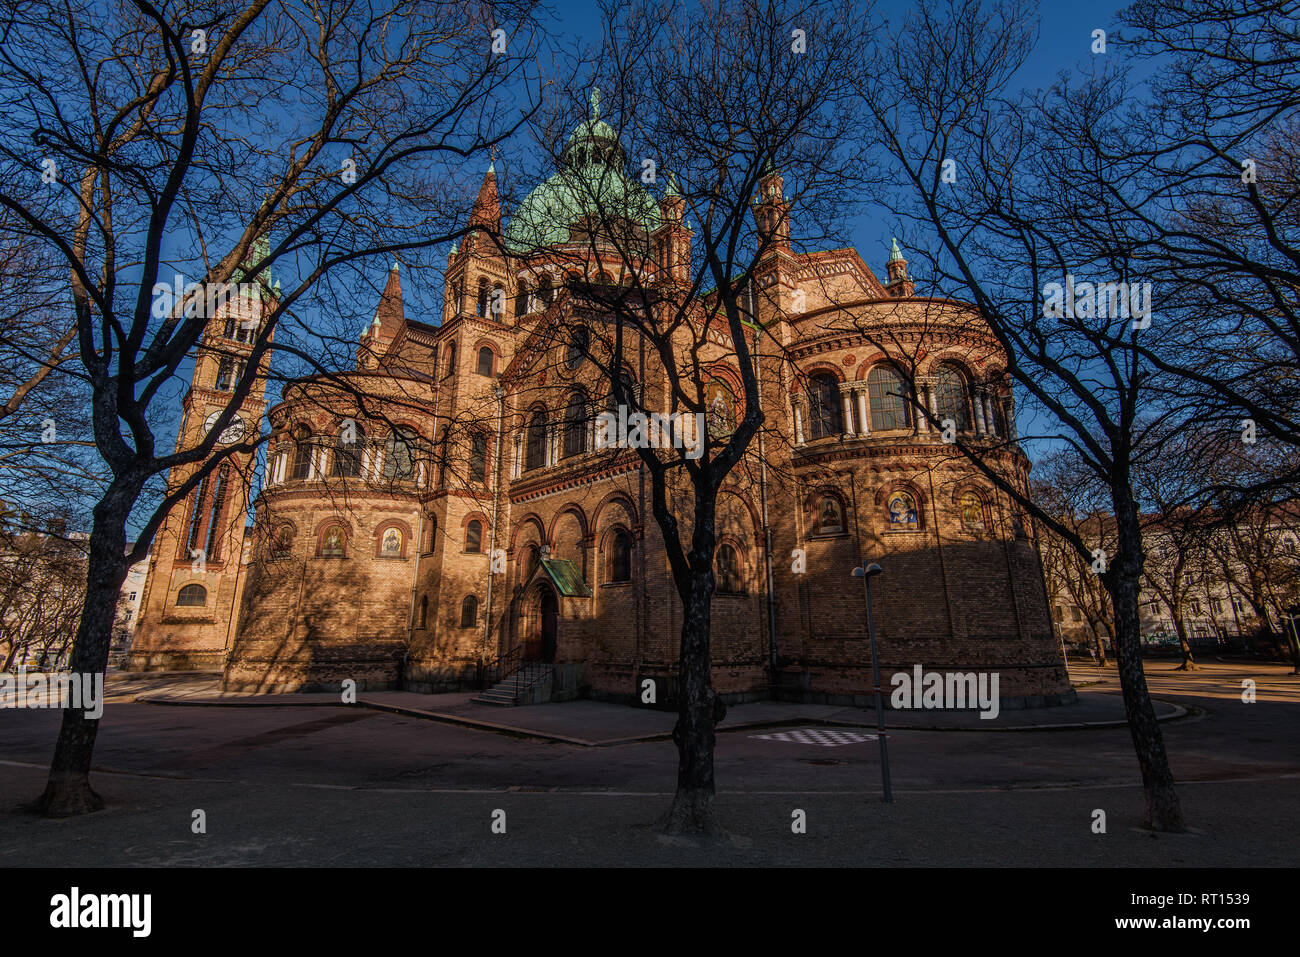 Vienna, Austria - December 25, 2017. St. Anthony of Padua Church built in Byzantine or Romanesque Revival architecture style. Catholic church with bri - Stock Image